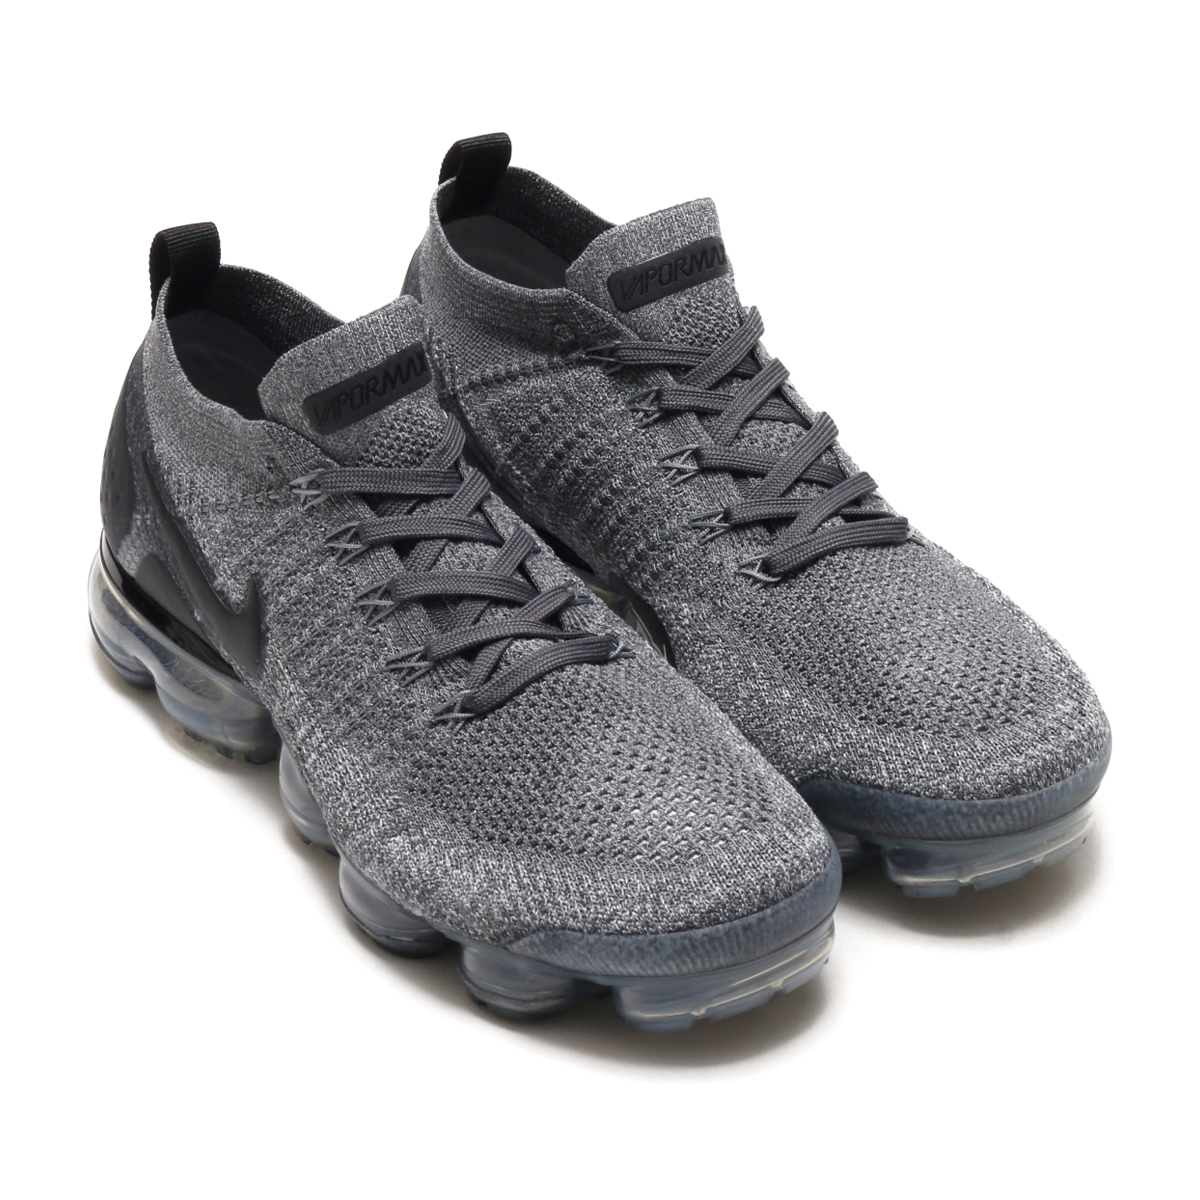 4da28cb22da NIKE AIR VAPORMAX FLYKNIT 2 (Nike air vapor max fried food knit 2) (DARK  GREY BLACK-WOLF GREY-BLACK) 18SU-S